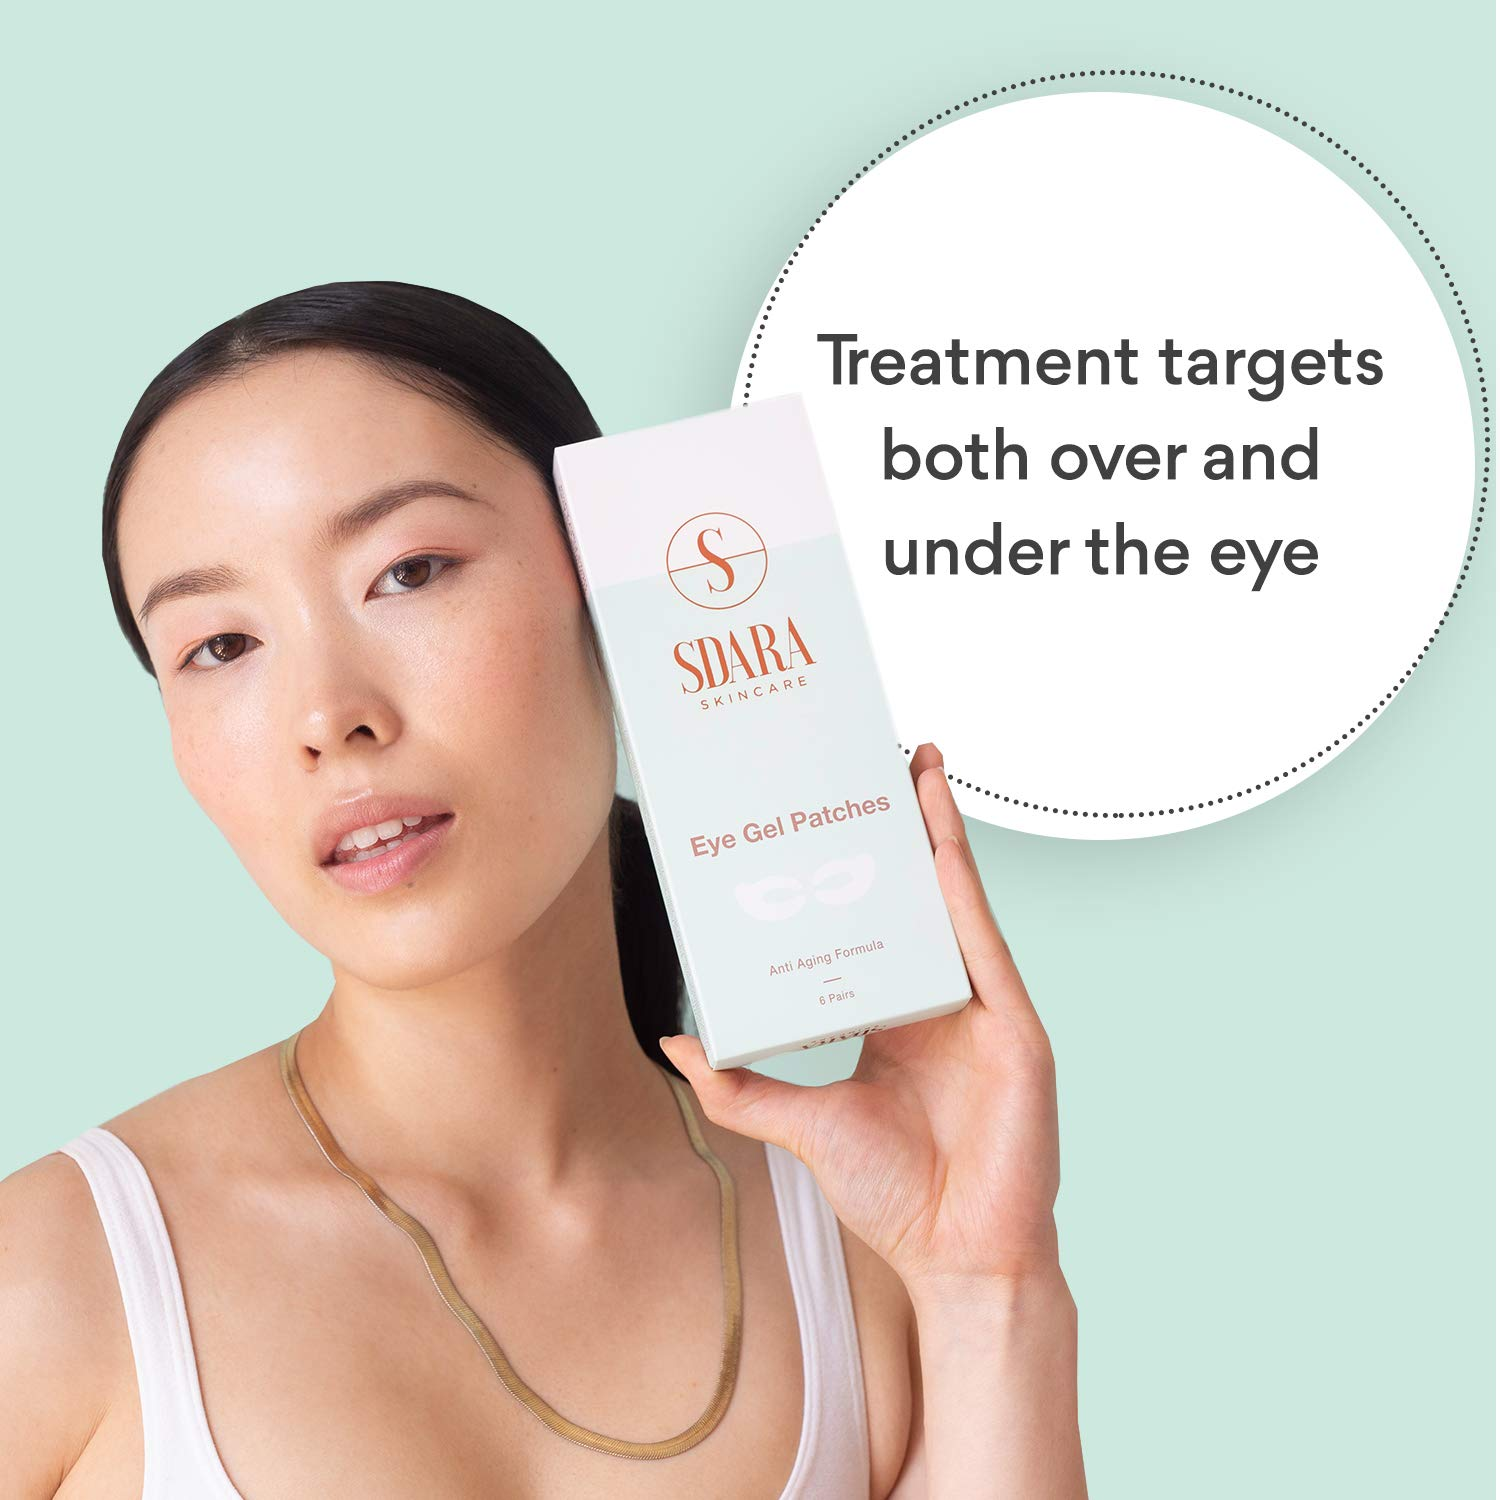 Each facial skin area has its own characteristics and needs a different care regimen